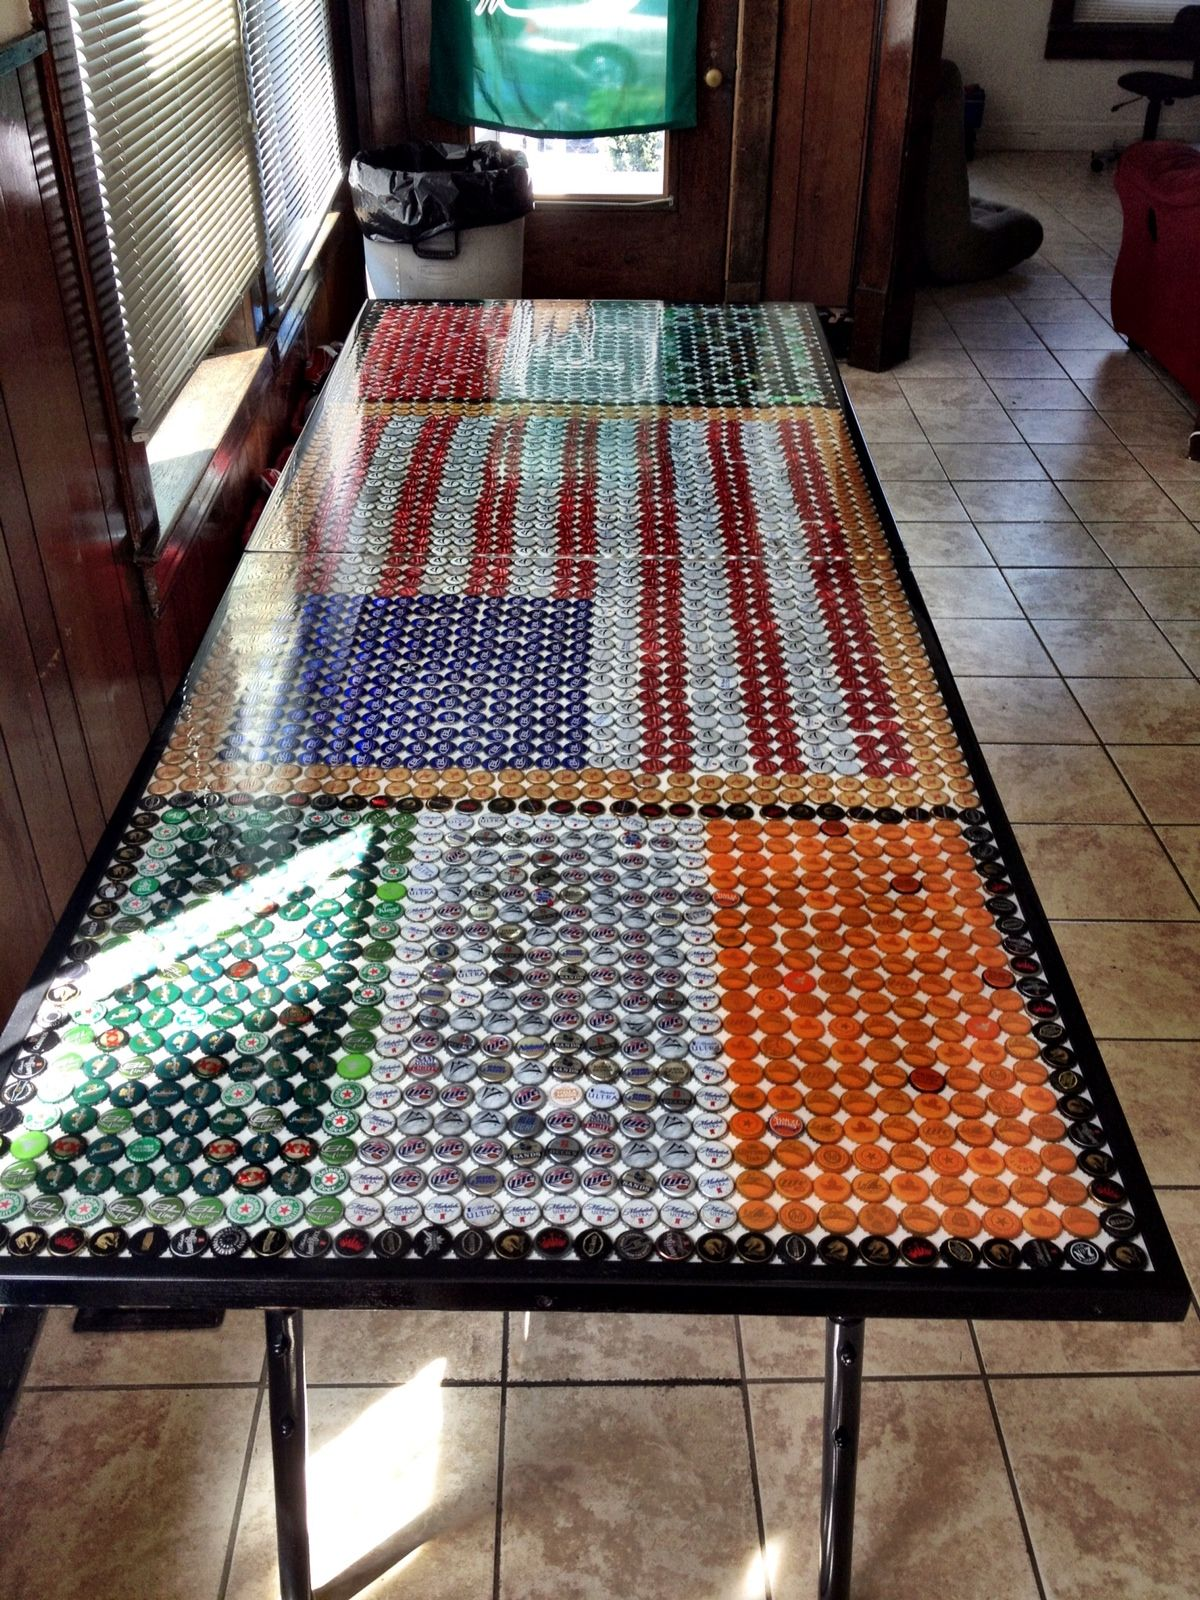 Homemade beer pong table - Diy Beer Pong Table Collect Beer Caps And Design Your Own